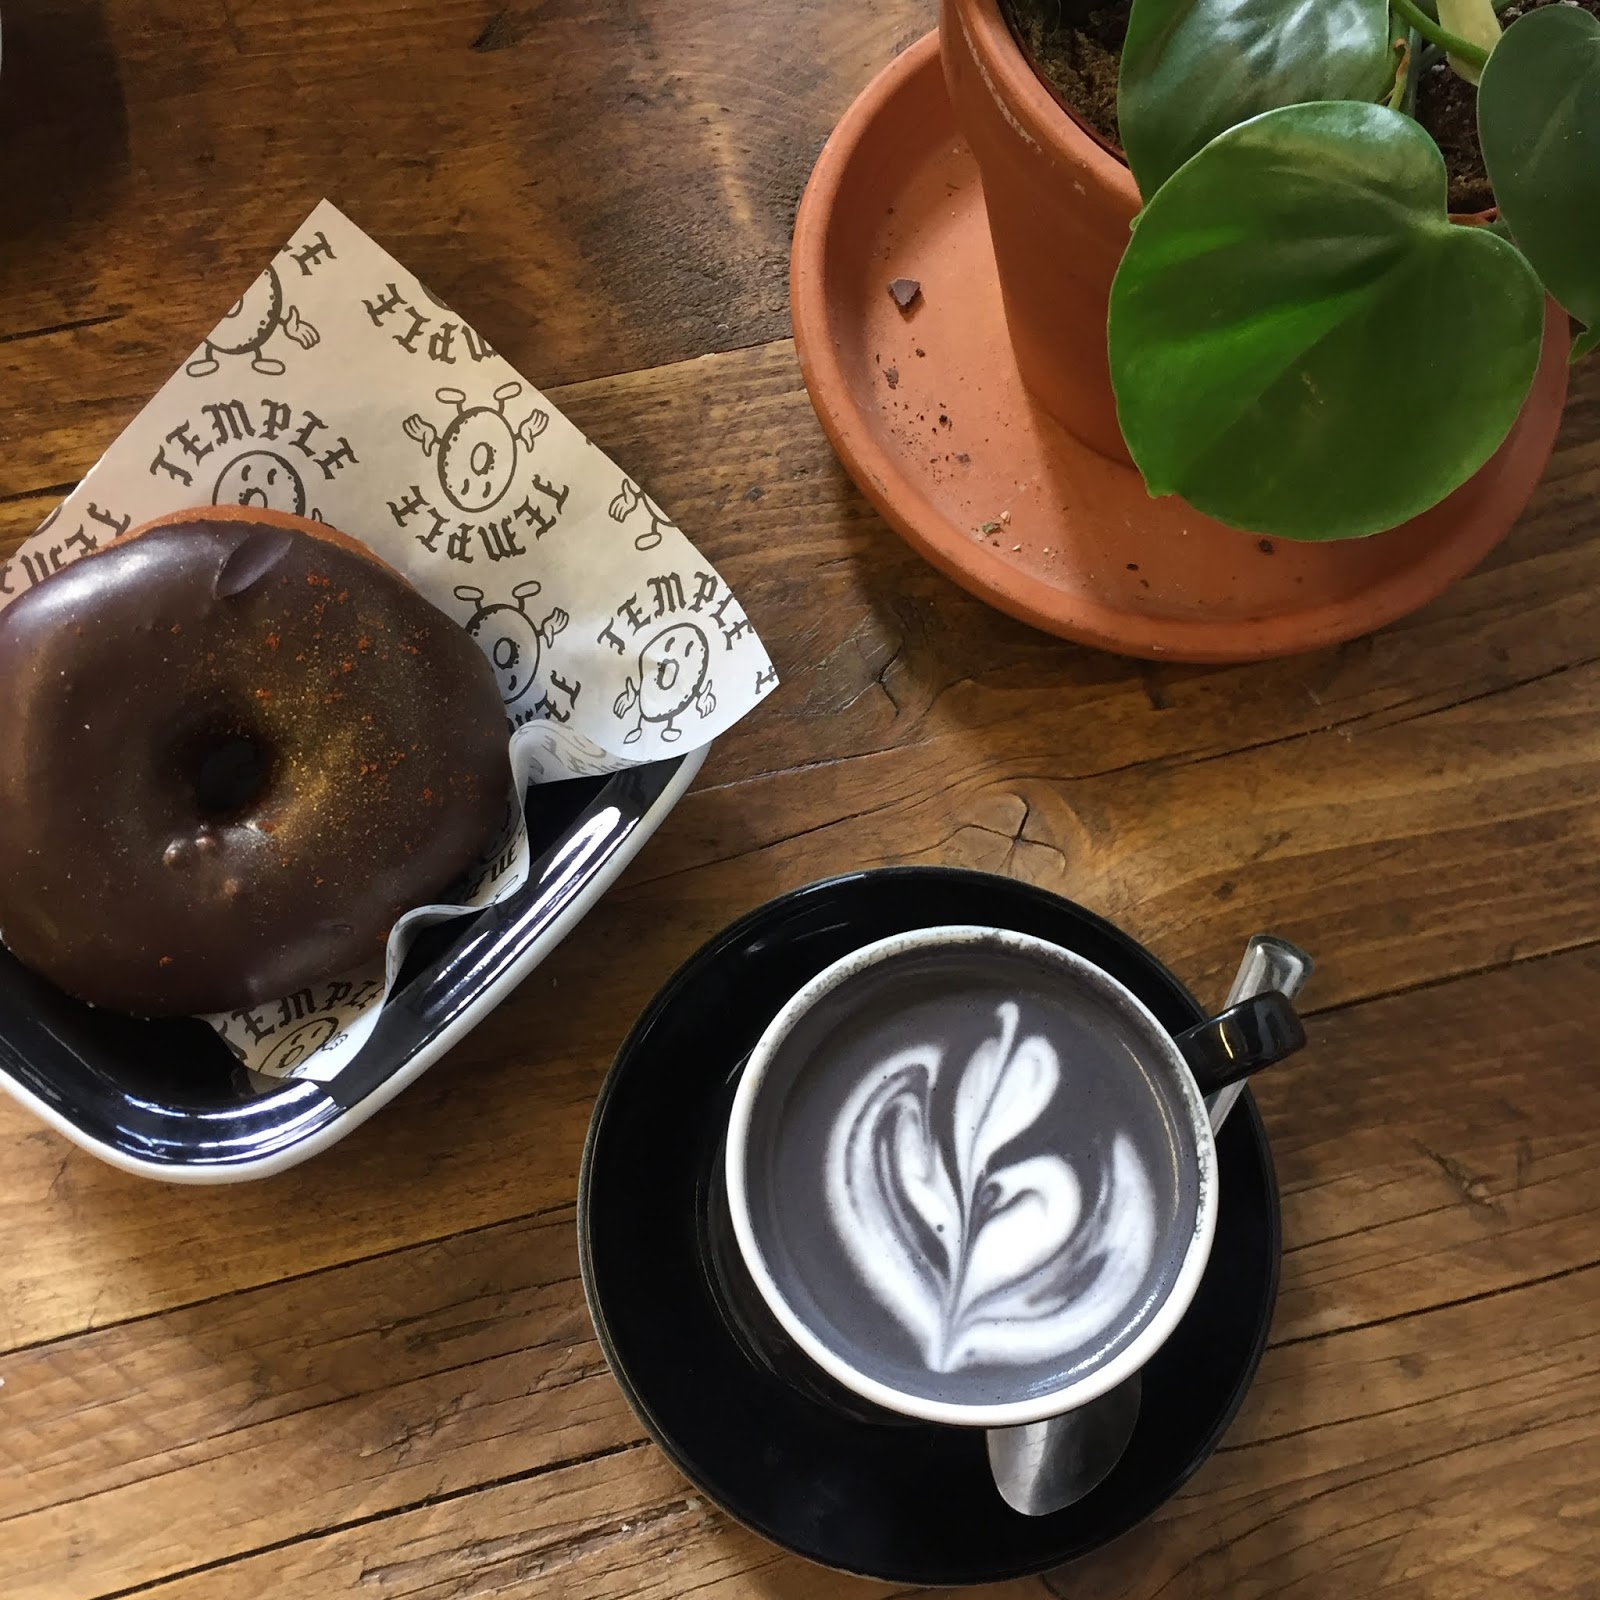 coffee, doughnut and plants at Temple, Leeds